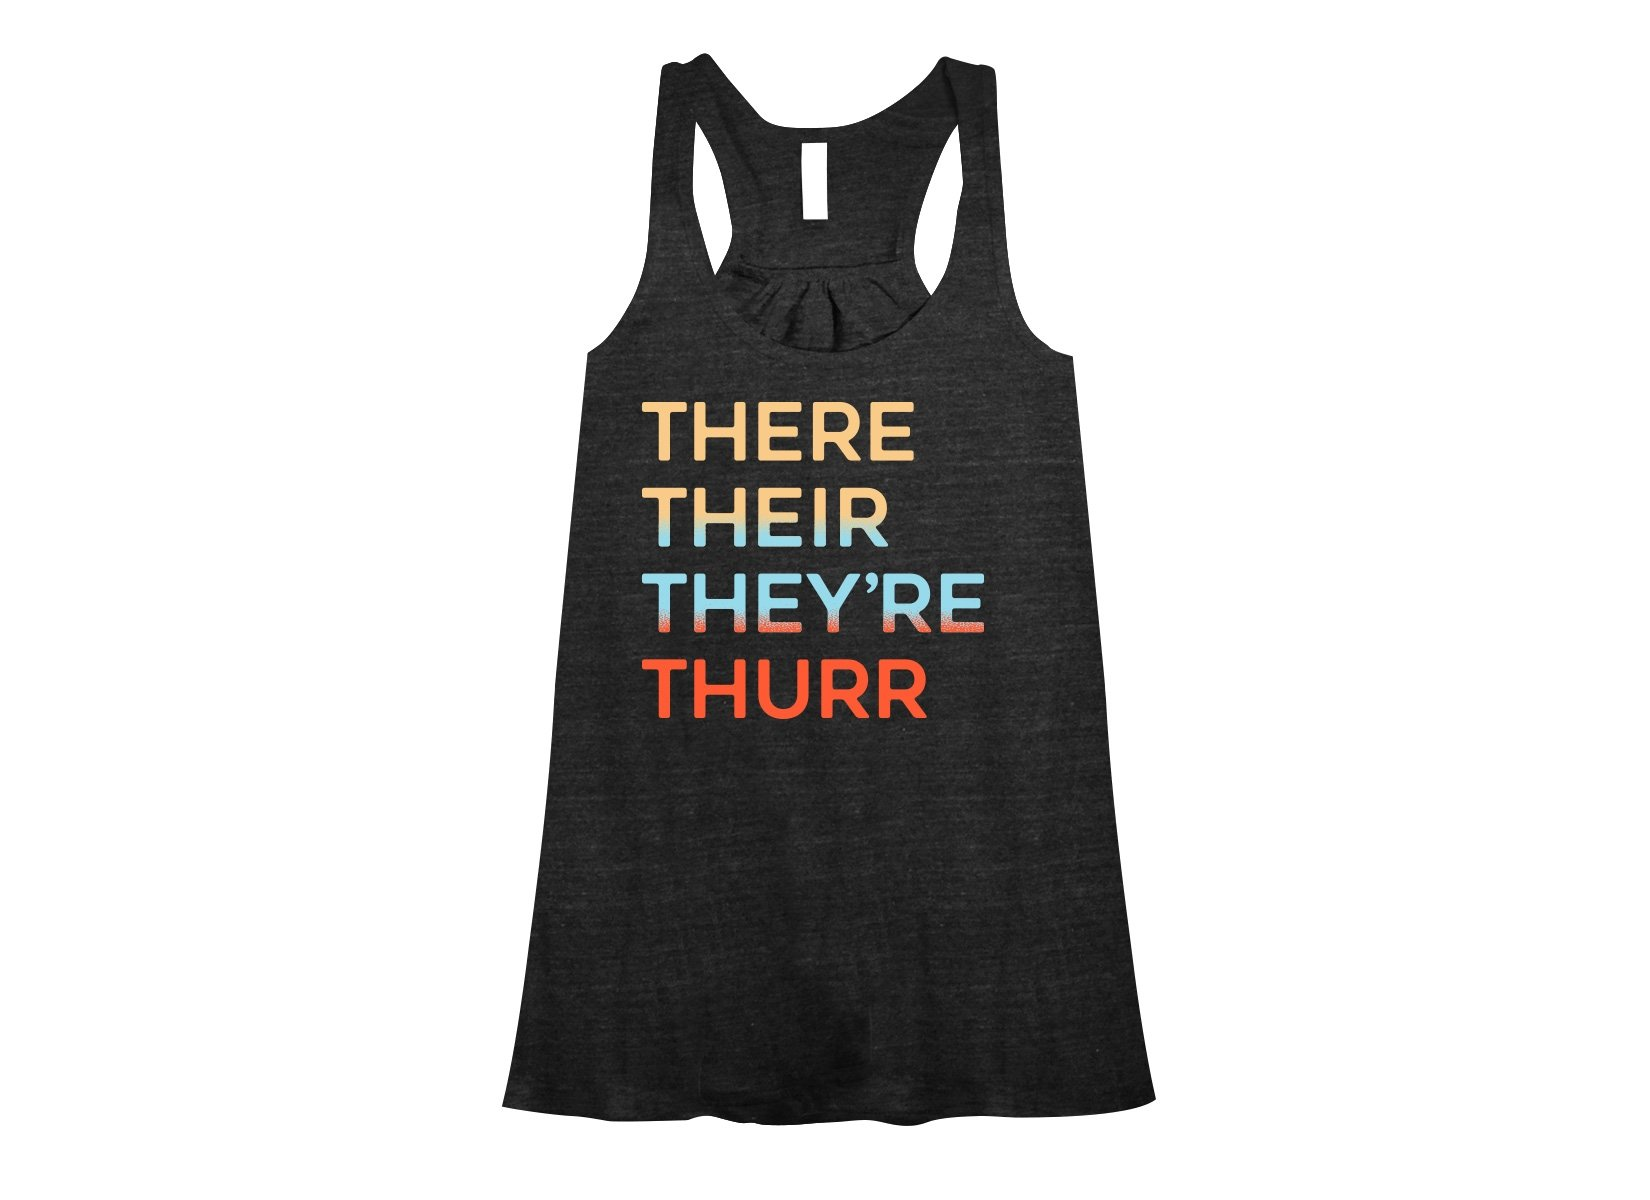 There Their They're Thurr on Womens Tanks T-Shirt